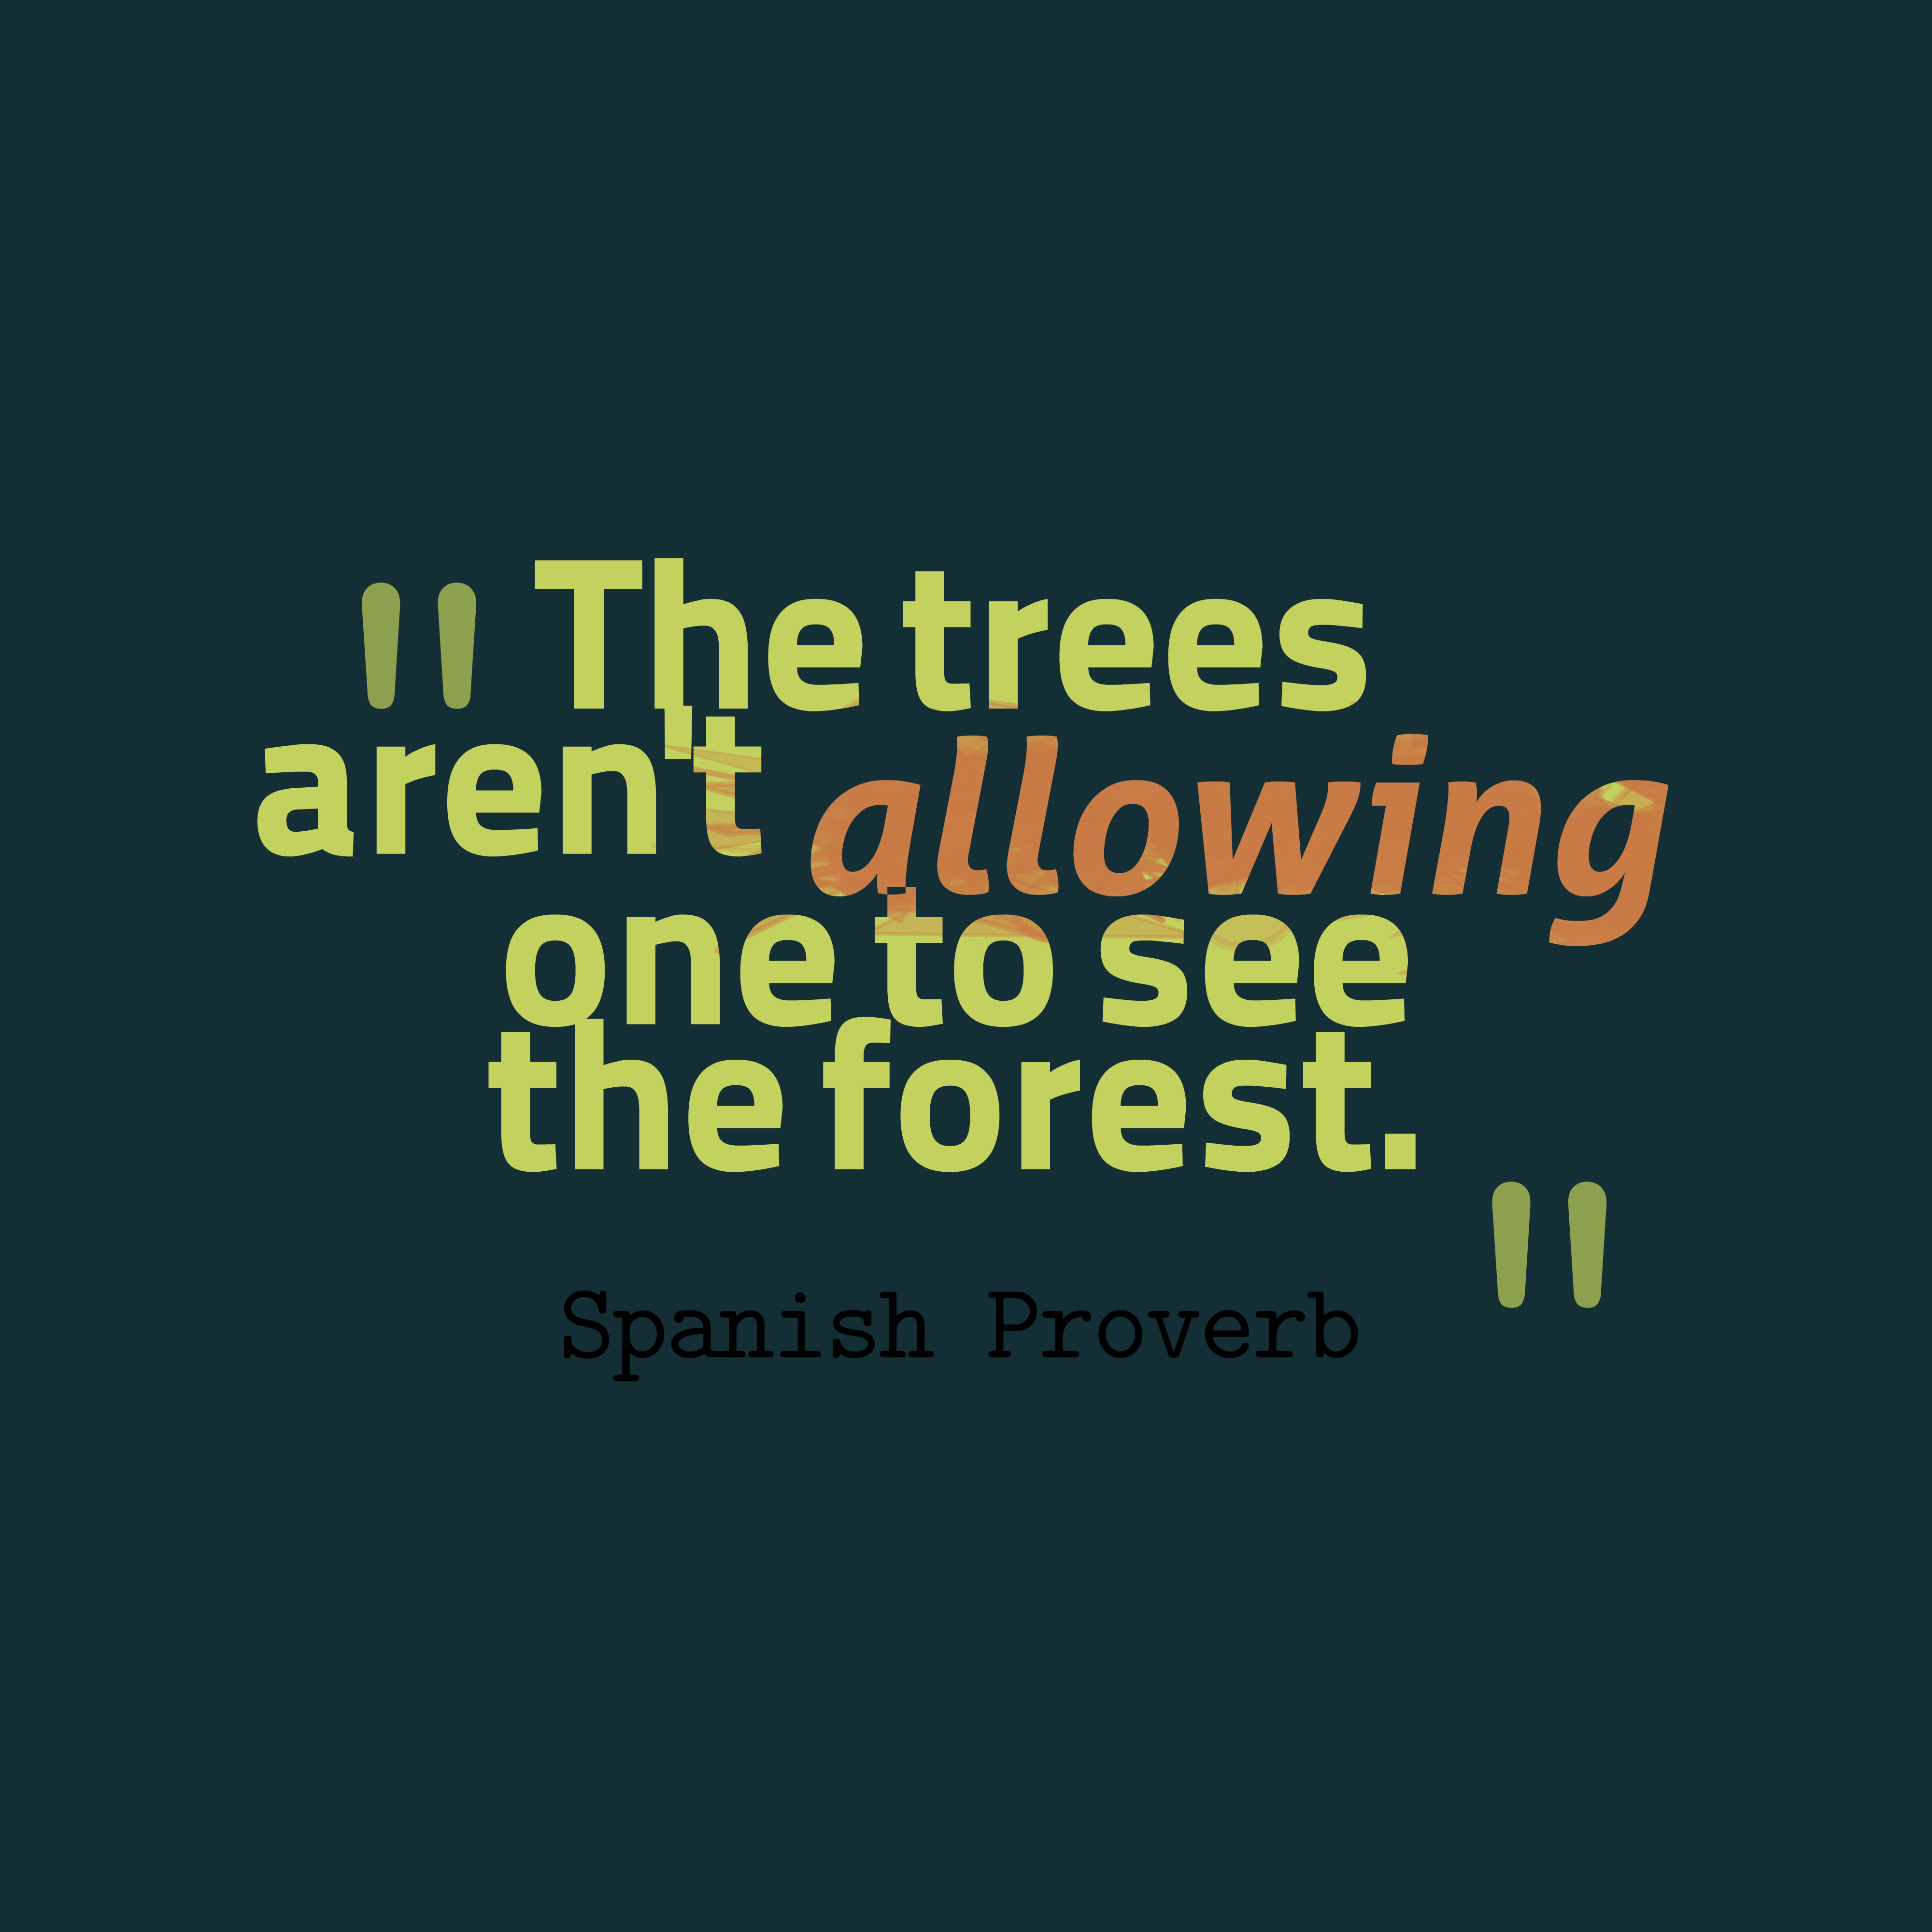 Quotes image of The trees aren't allowing one to see the forest.